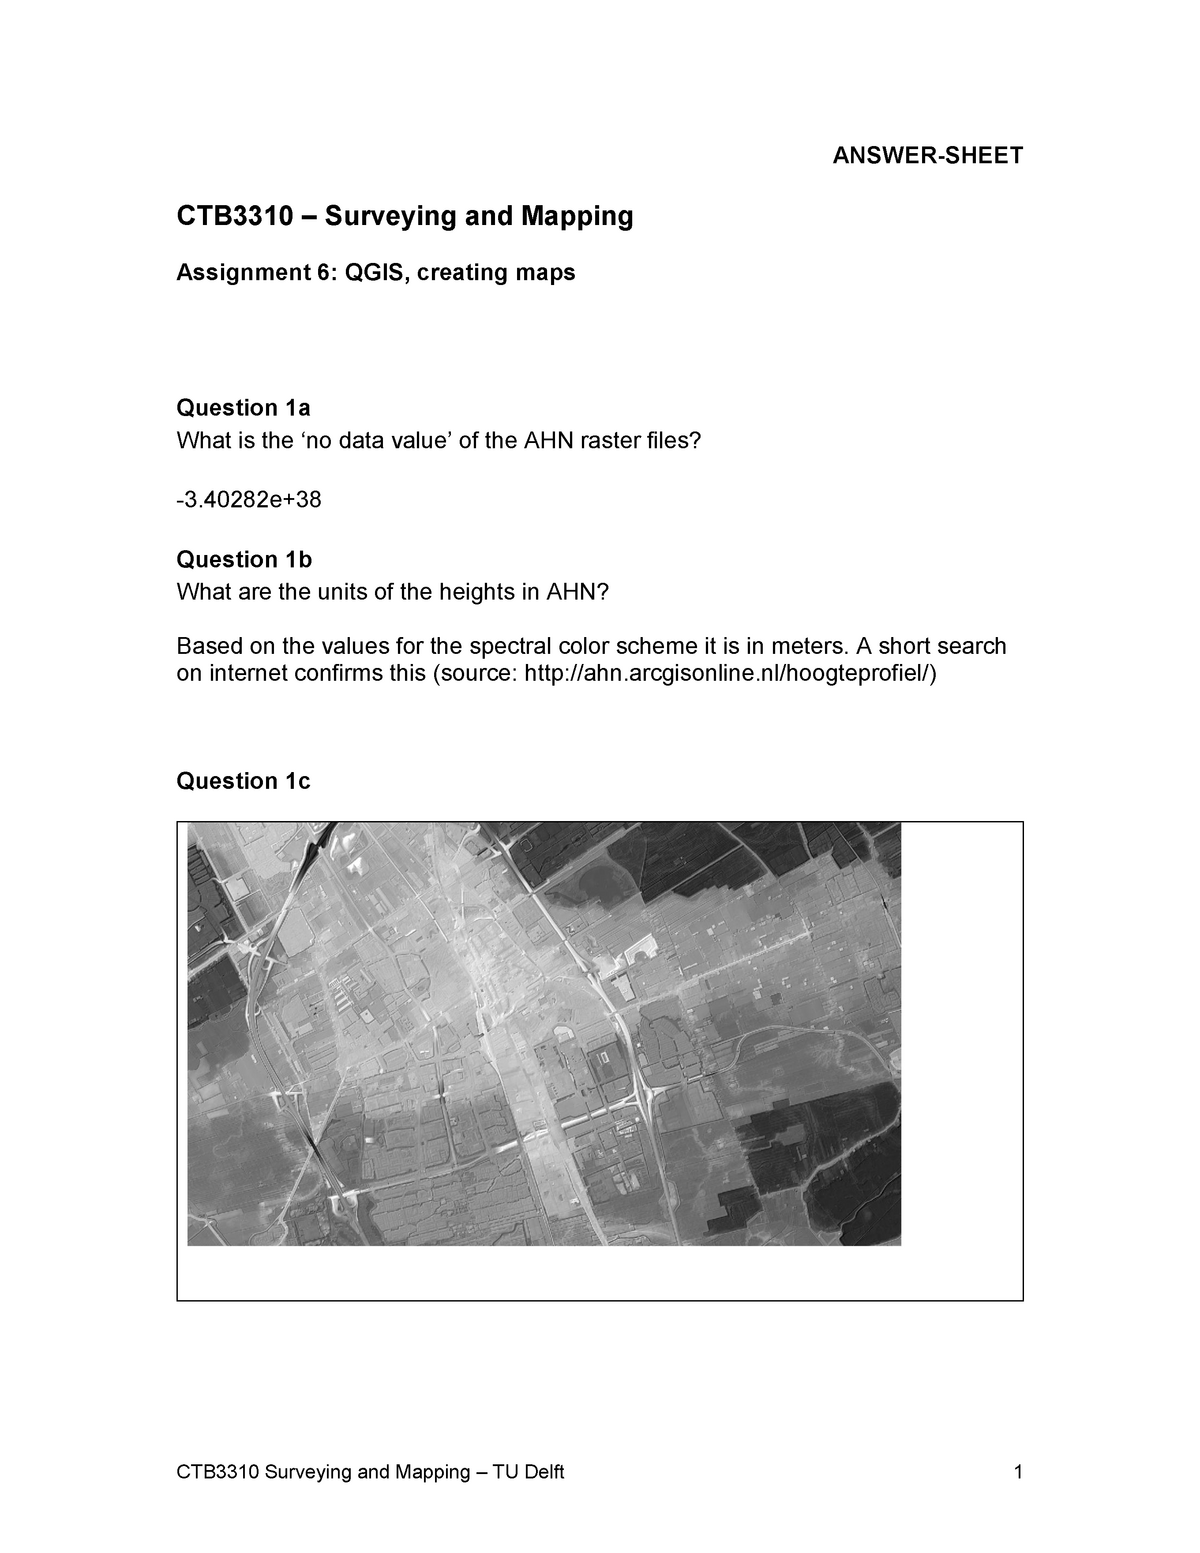 Assignment 6 answersheet - CTB3310: Surveying and Mapping